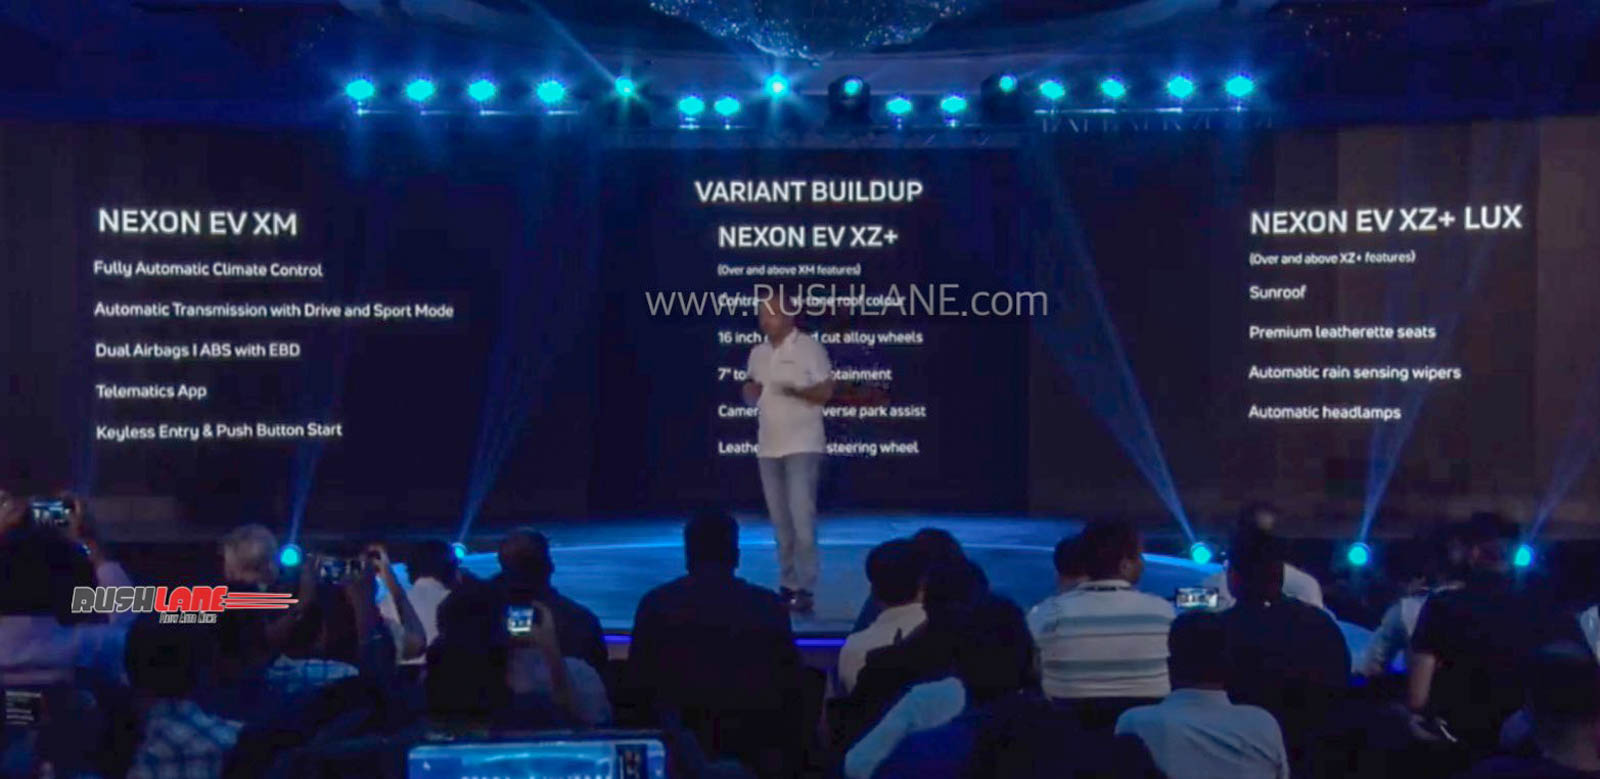 Tata Nexon electric variants and features.